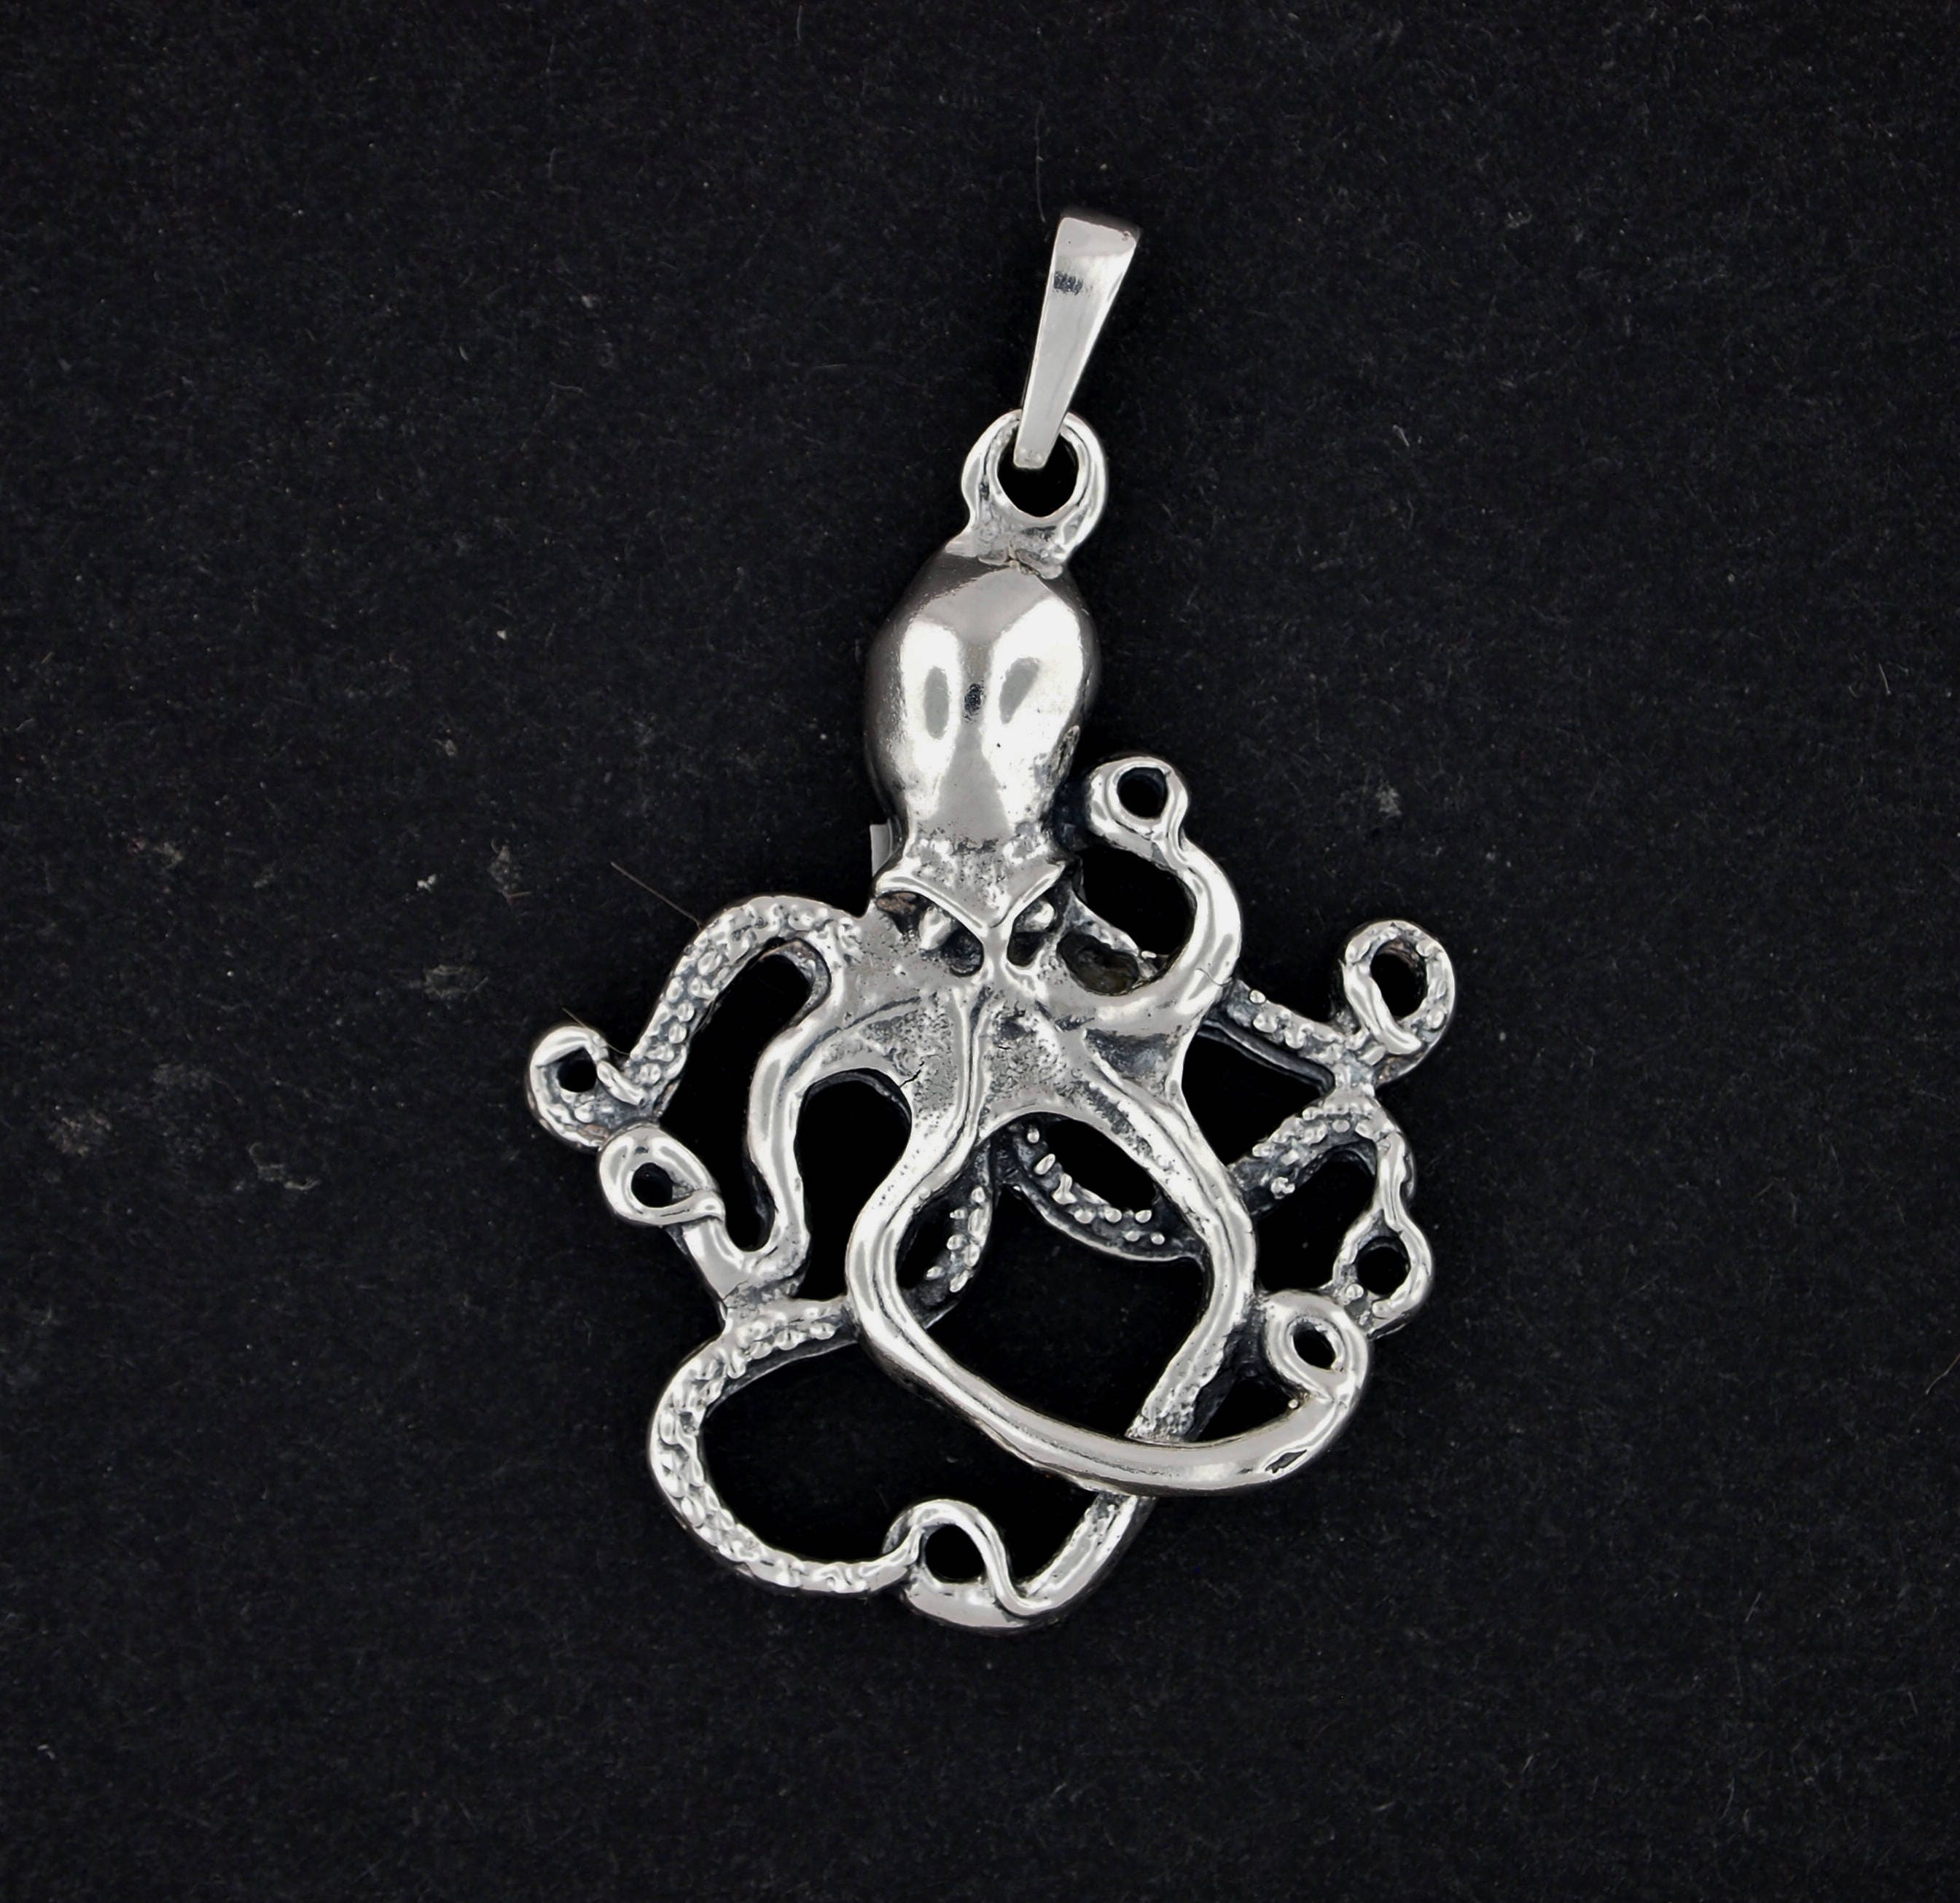 print jewelry octopus original model pendants stl models pendant